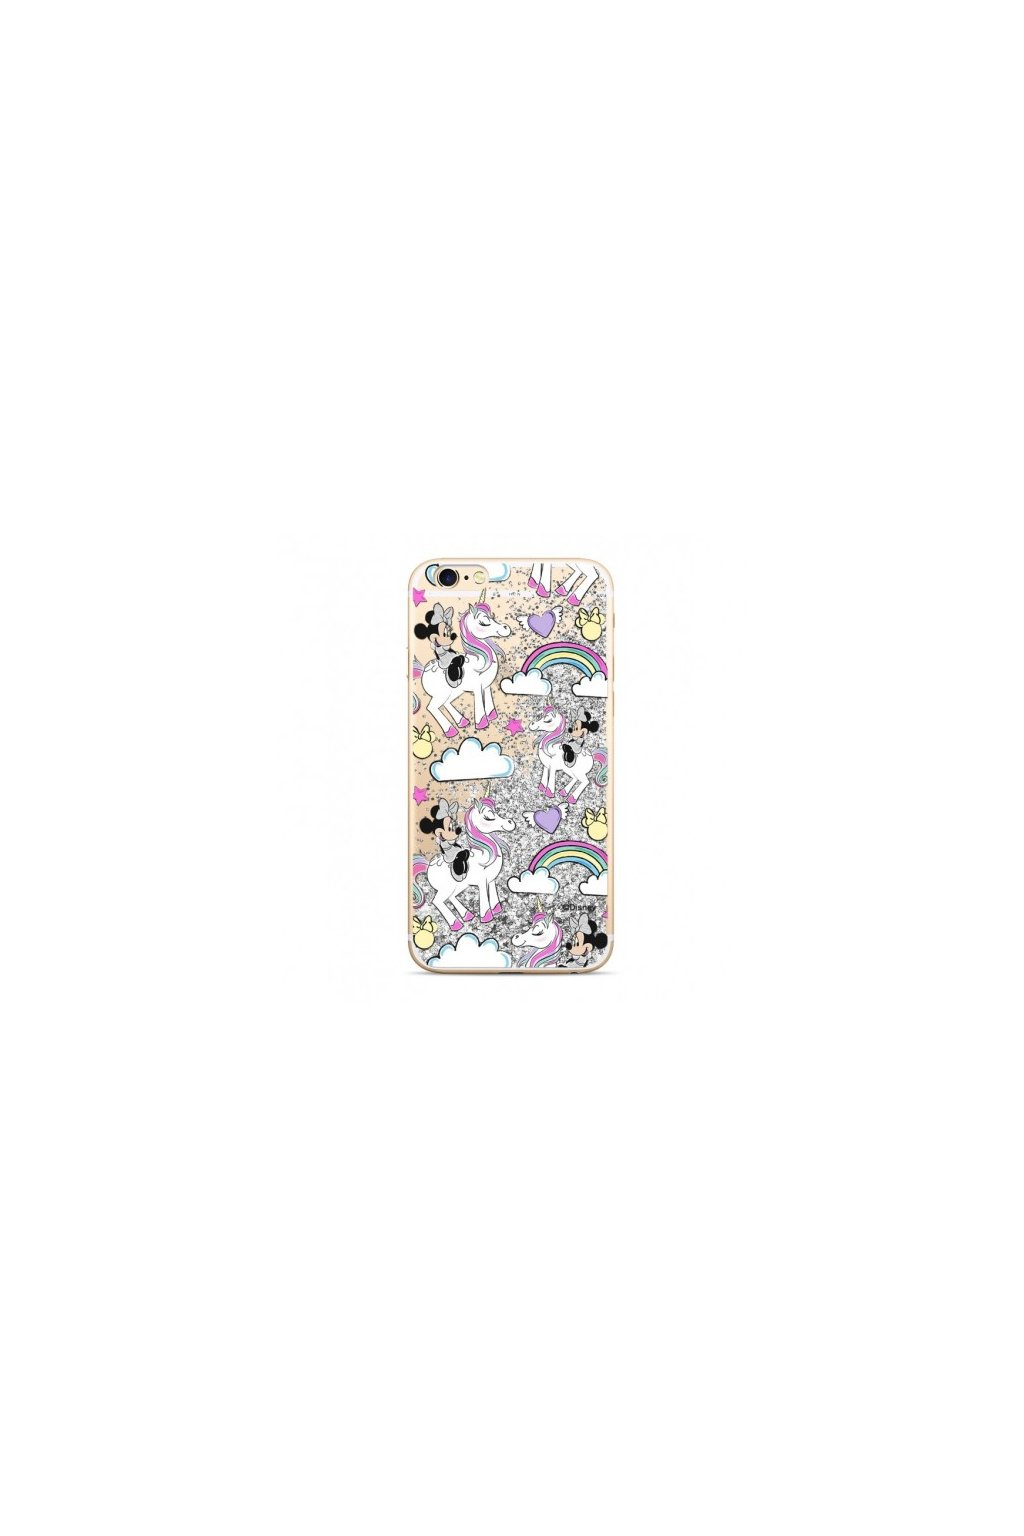 etui nakladka plynny brokat disney minnie 037 iphone 7 8 srebrny